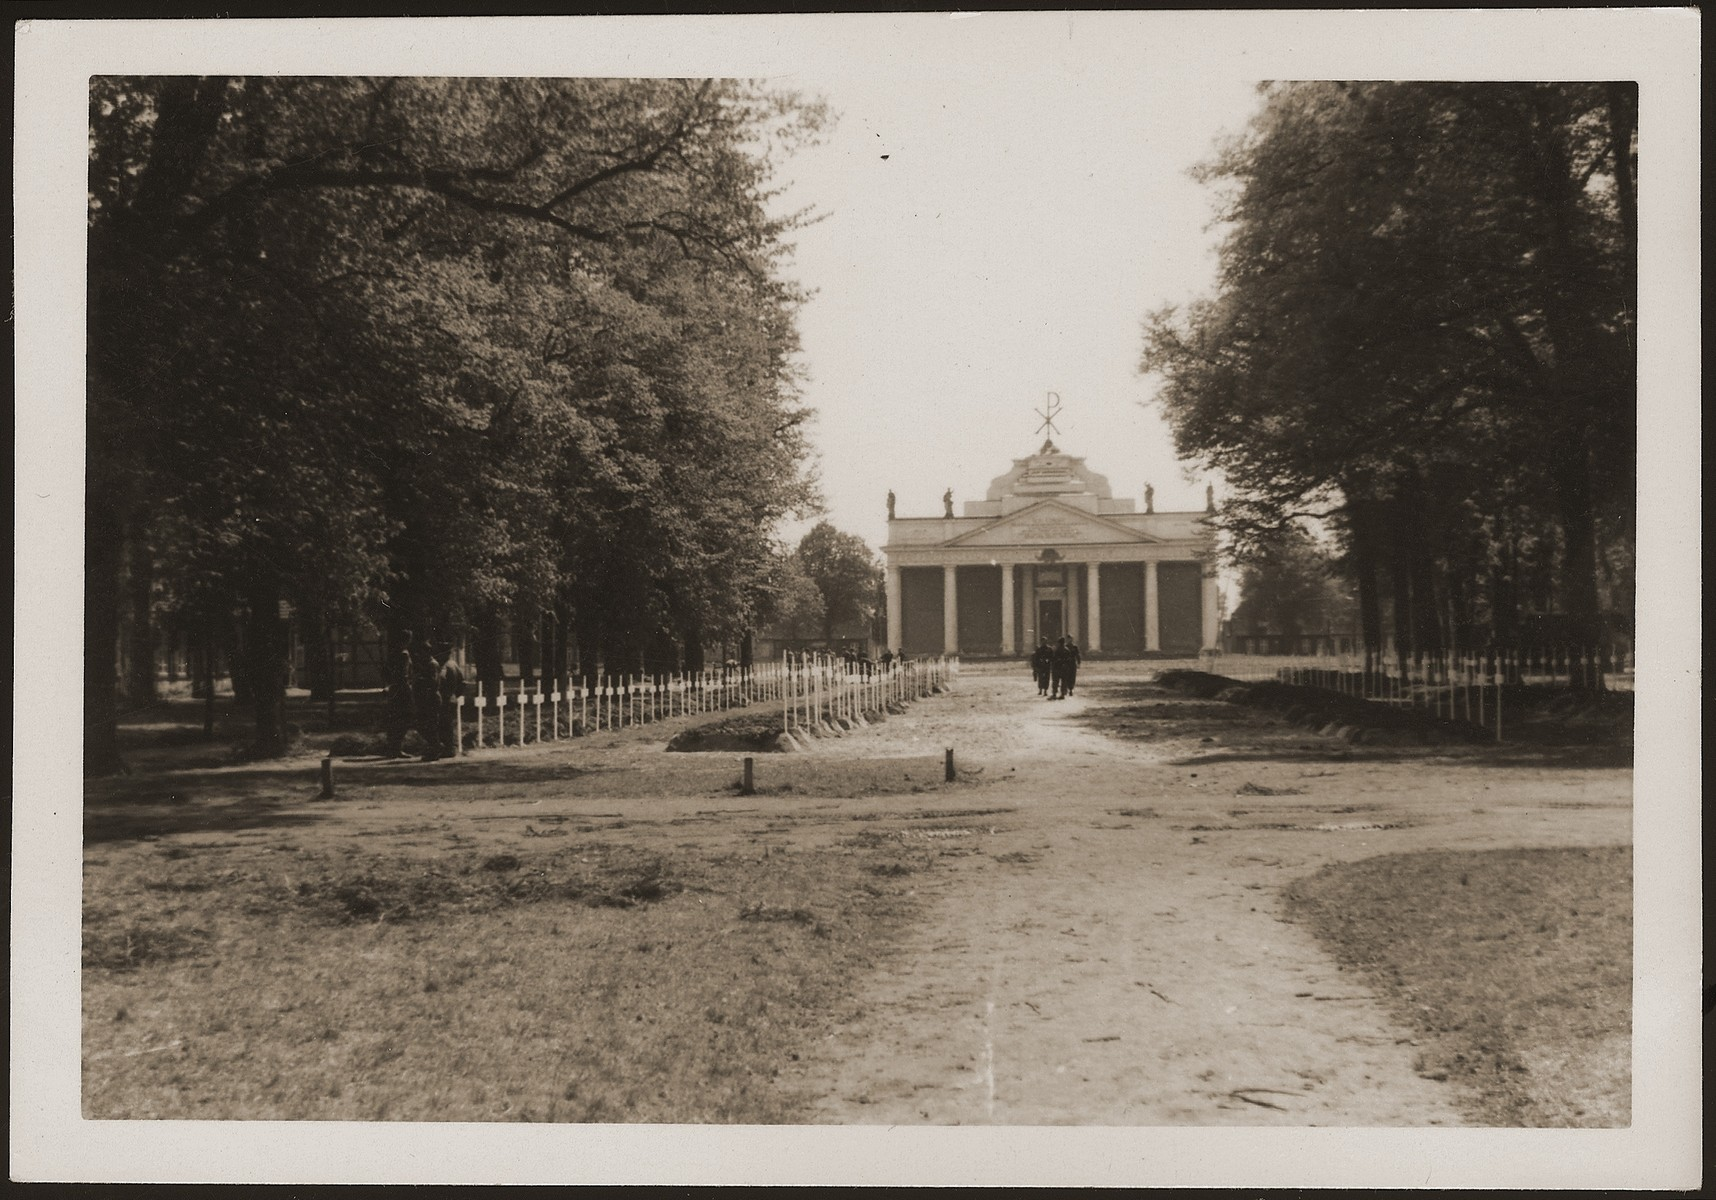 A view of the burial ground in Ludwigslust on the palace grounds of the Archduke of Mecklenburg, where the townspeople were forced by U.S. troops to bury the corpses of prisoners killed in the Woebbelin concentration camp .